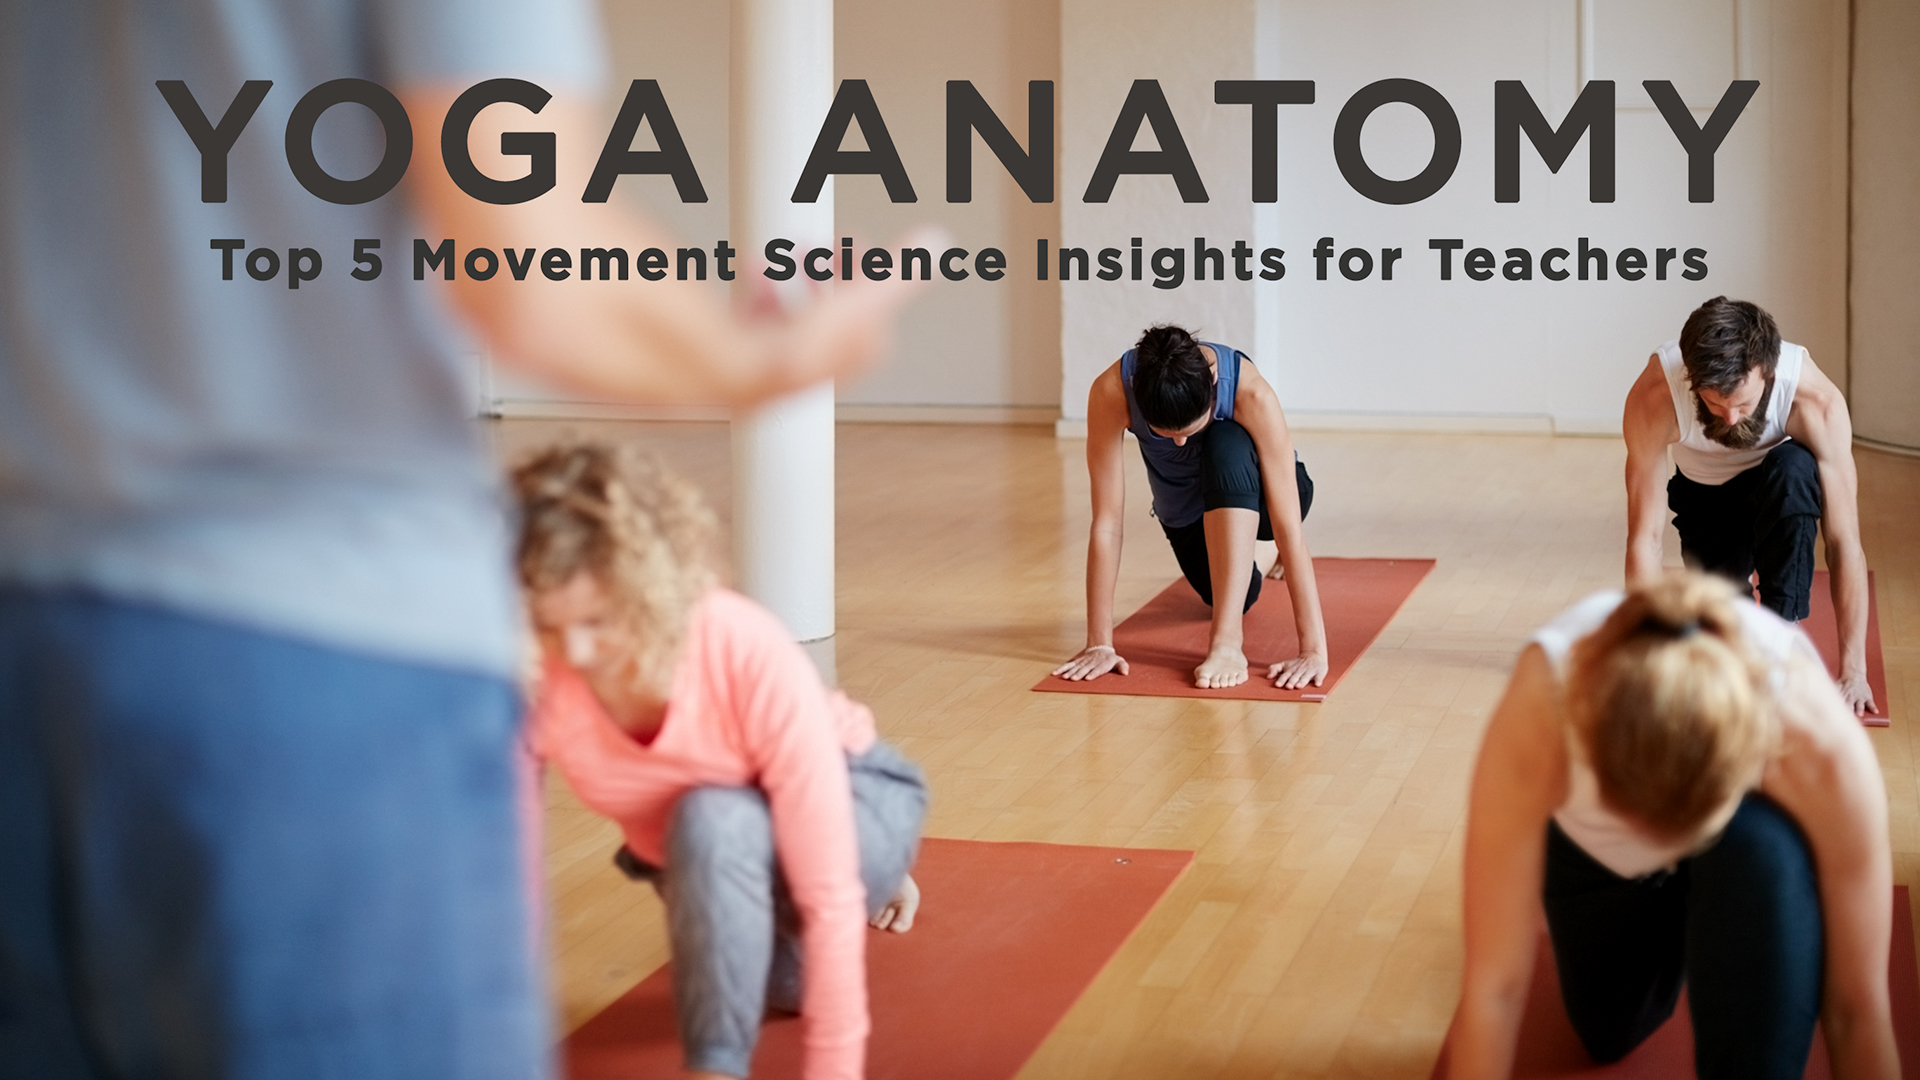 Yoga Anatomy Top 5 Movement Science Insights For Teachers